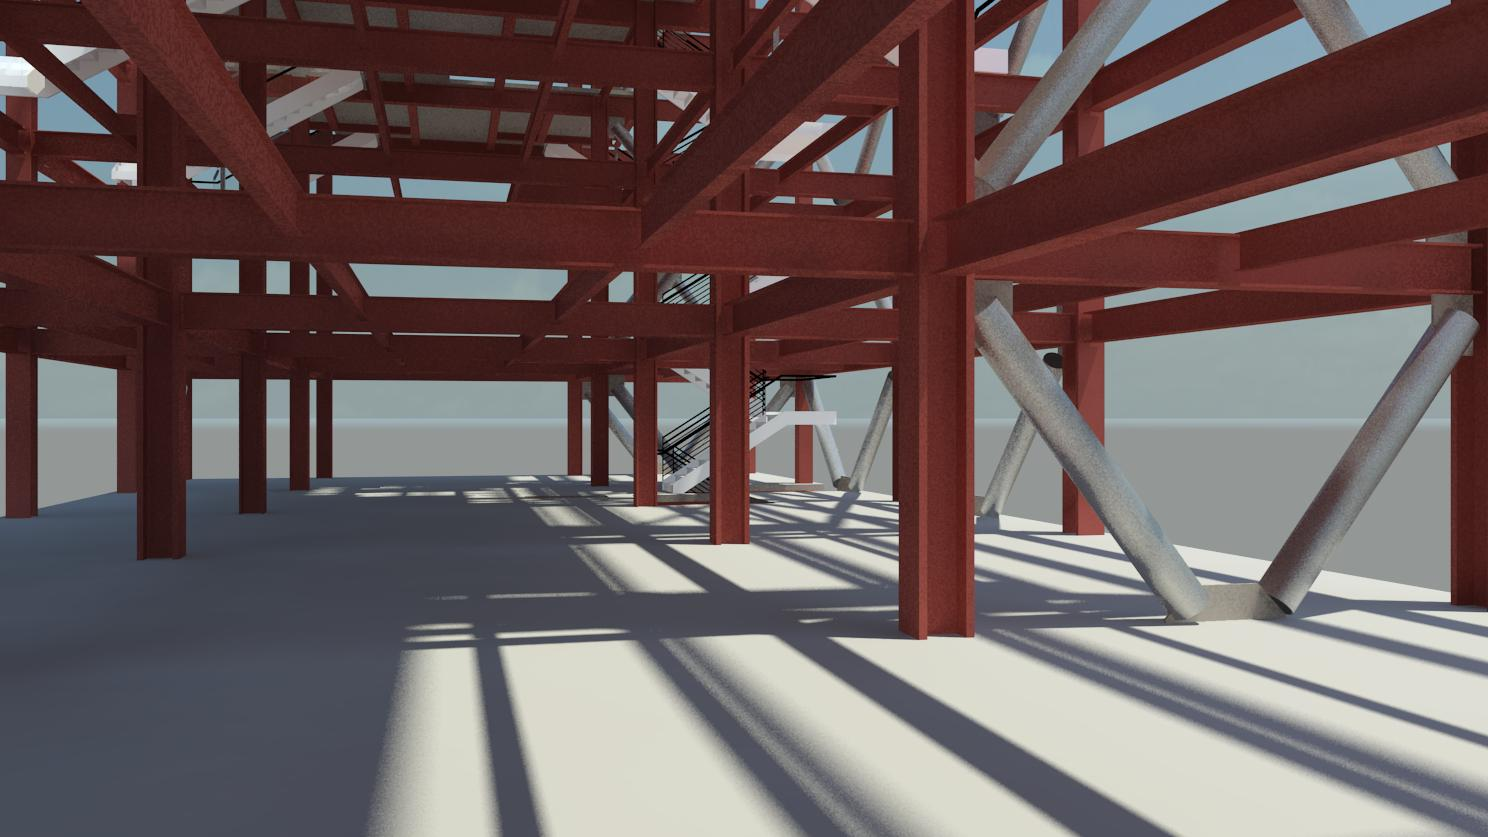 Selma Ave Hotel, Hollywood - Perspective - Open Steel Framing 6th Floor thru Helipad